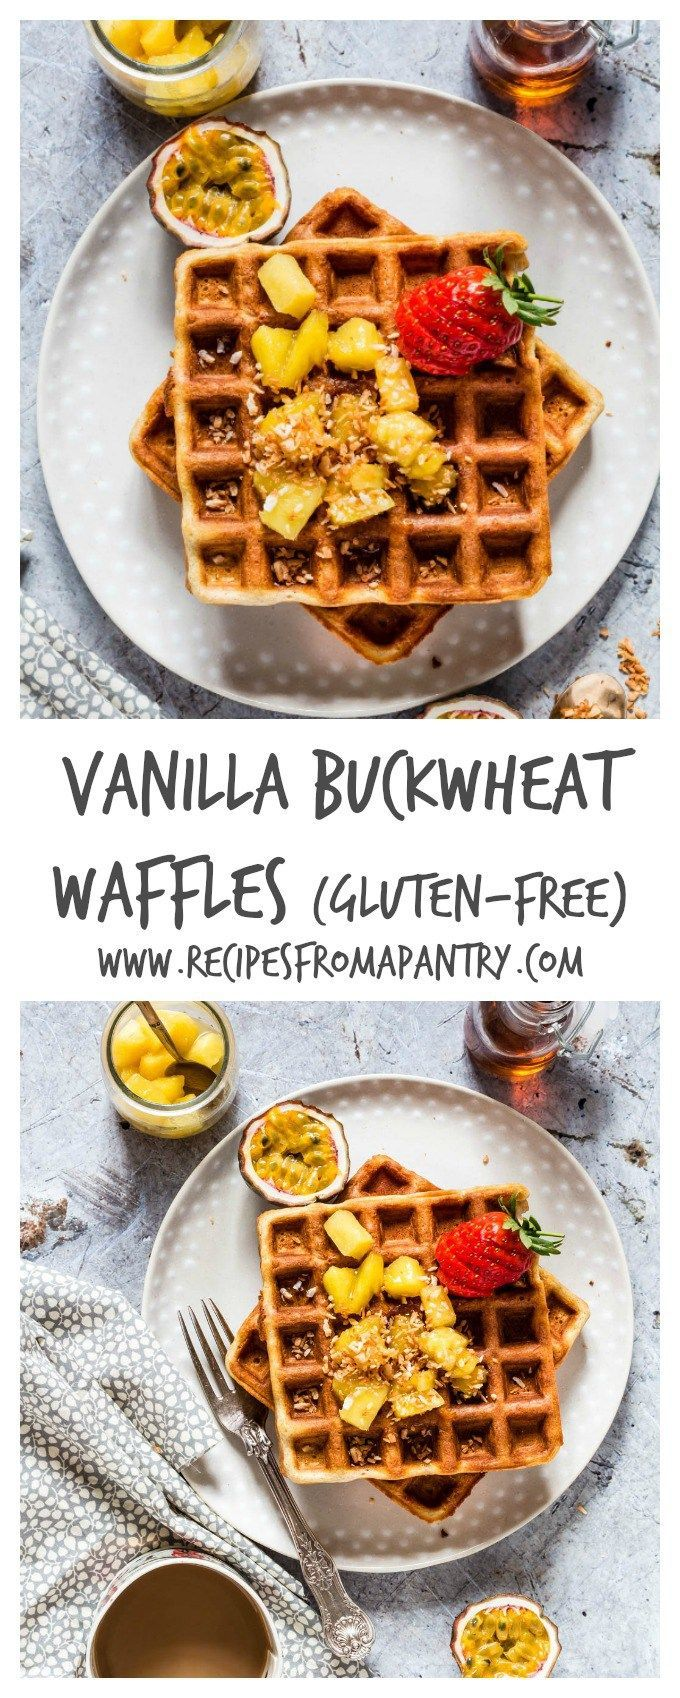 Gluten-free Vanilla Buckwheat Waffles - these awesome waffles are made with just 6 ingredients buckwheat flour, eggs, vanilla, butter, baking powder and milk. Plue the maple pineapple topping is really really good - recipesfromapantry.com {recipe, food, breakfast}